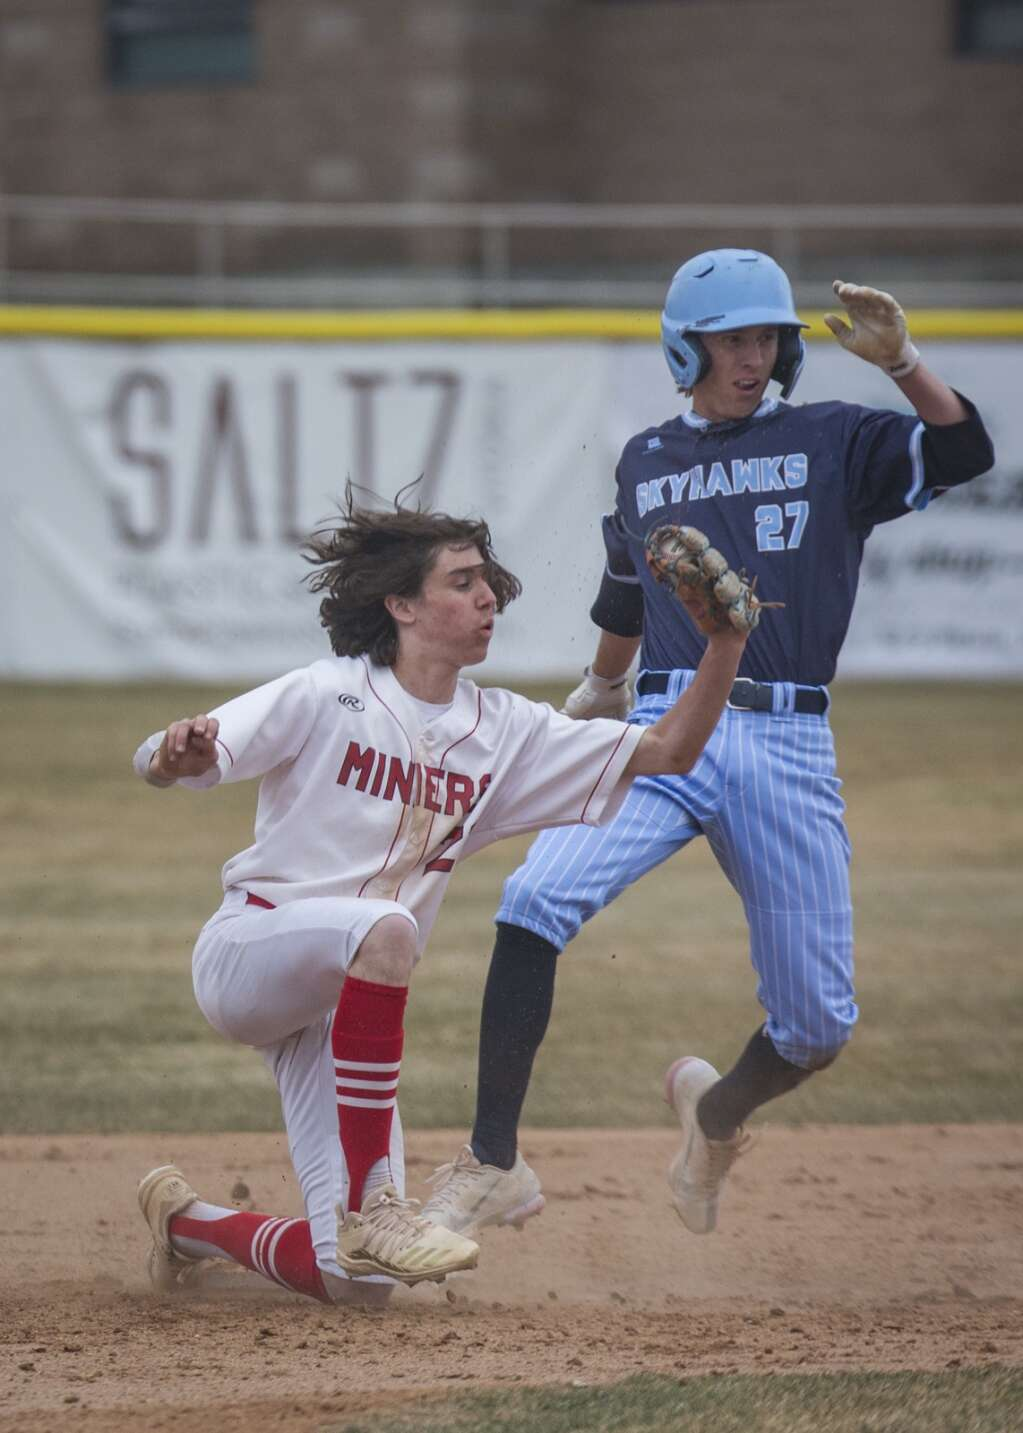 Park City's Dylan Fishbough (23) lunges to catch the ball, striking out Salem Hills' Luke DeGraffenried (27) during their matchup Monday afternoon, April 5, 2021. The Miners fell to the Skyhawks 7-2. (Tanzi Propst/Park Record)